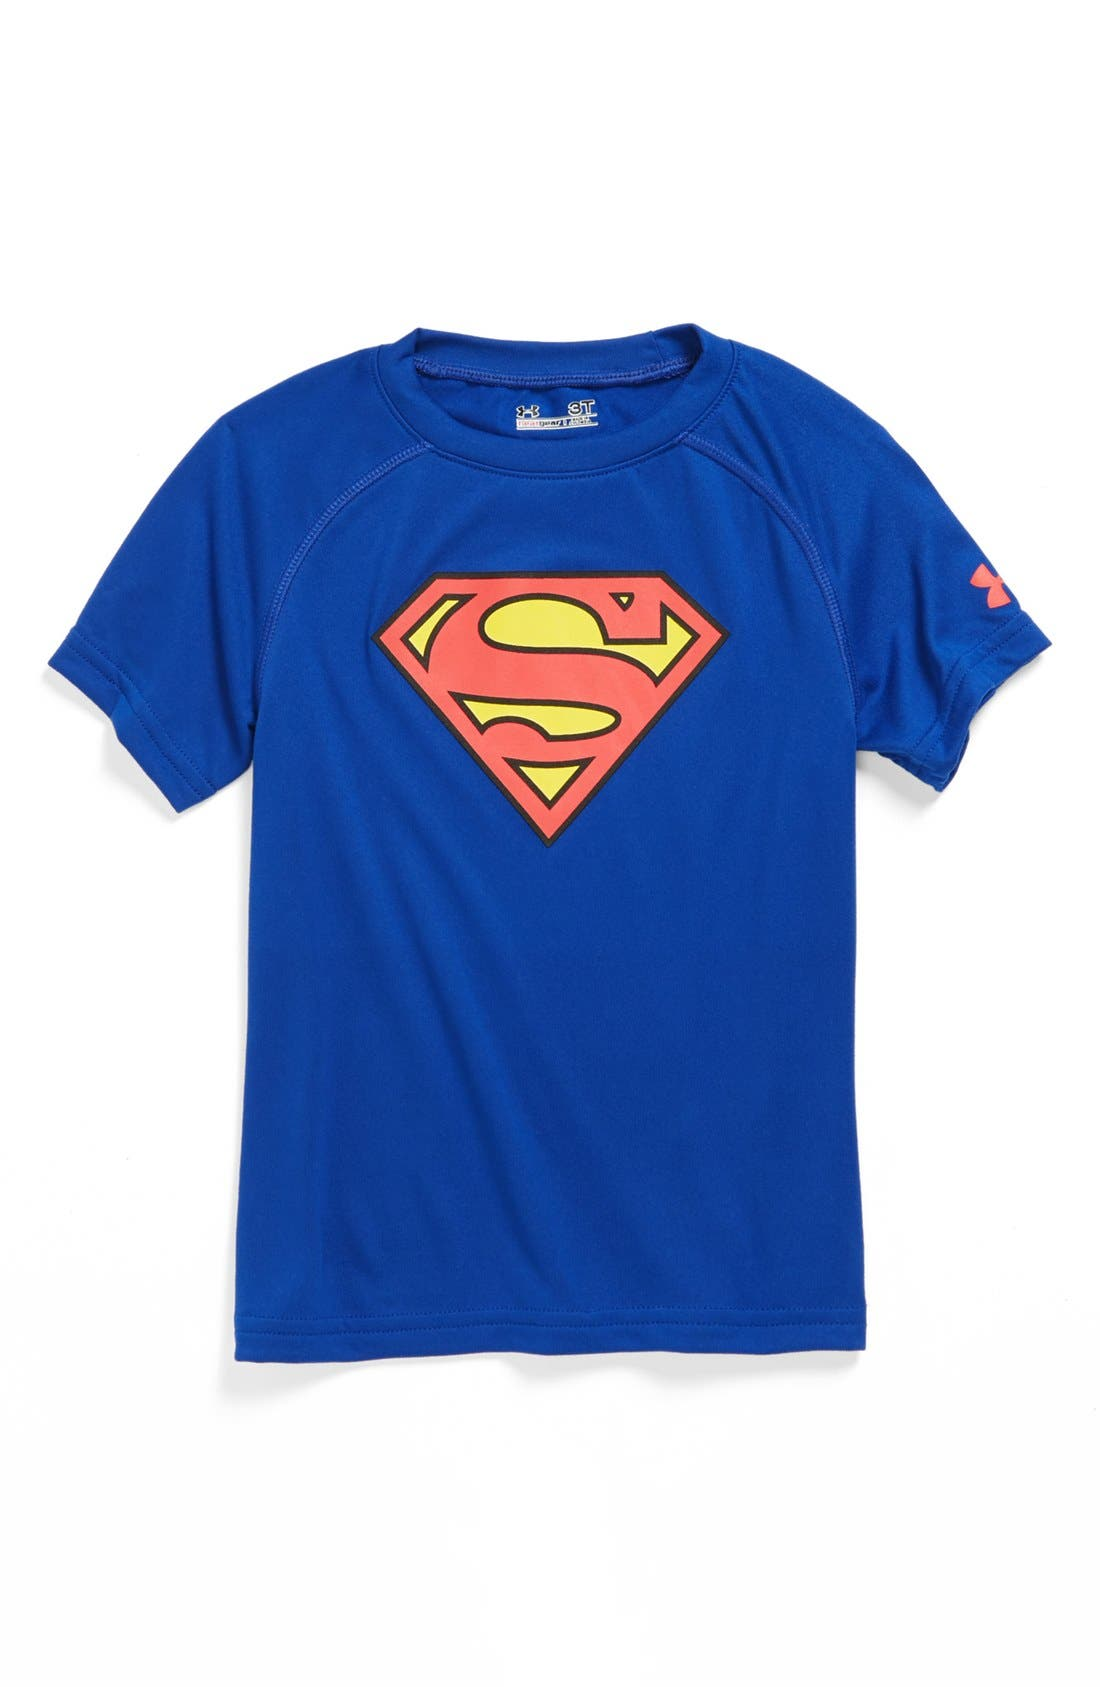 Alternate Image 1 Selected - Under Armour 'Alter Ego - Superman' HeatGear® T-shirt (Toddler Boys)